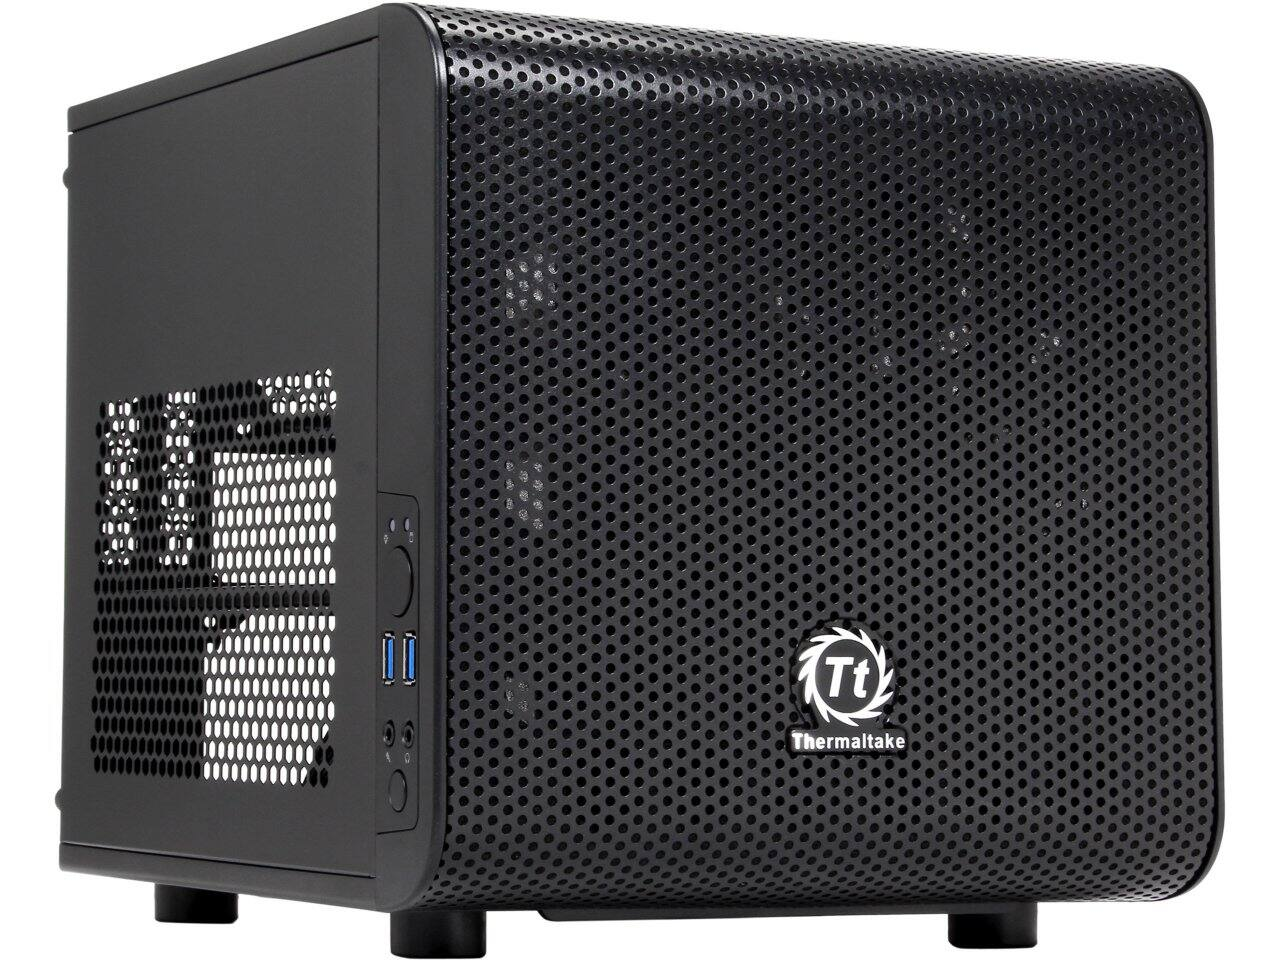 Thermaltake Core V1 Extreme Mini-ITX Cube Computer Case for $29.99 AR or Phanteks Eclipse Satin Black Steel Windowed ATX Mid Tower Case for $54.99 AR + Free Shipping  @ Newegg.com